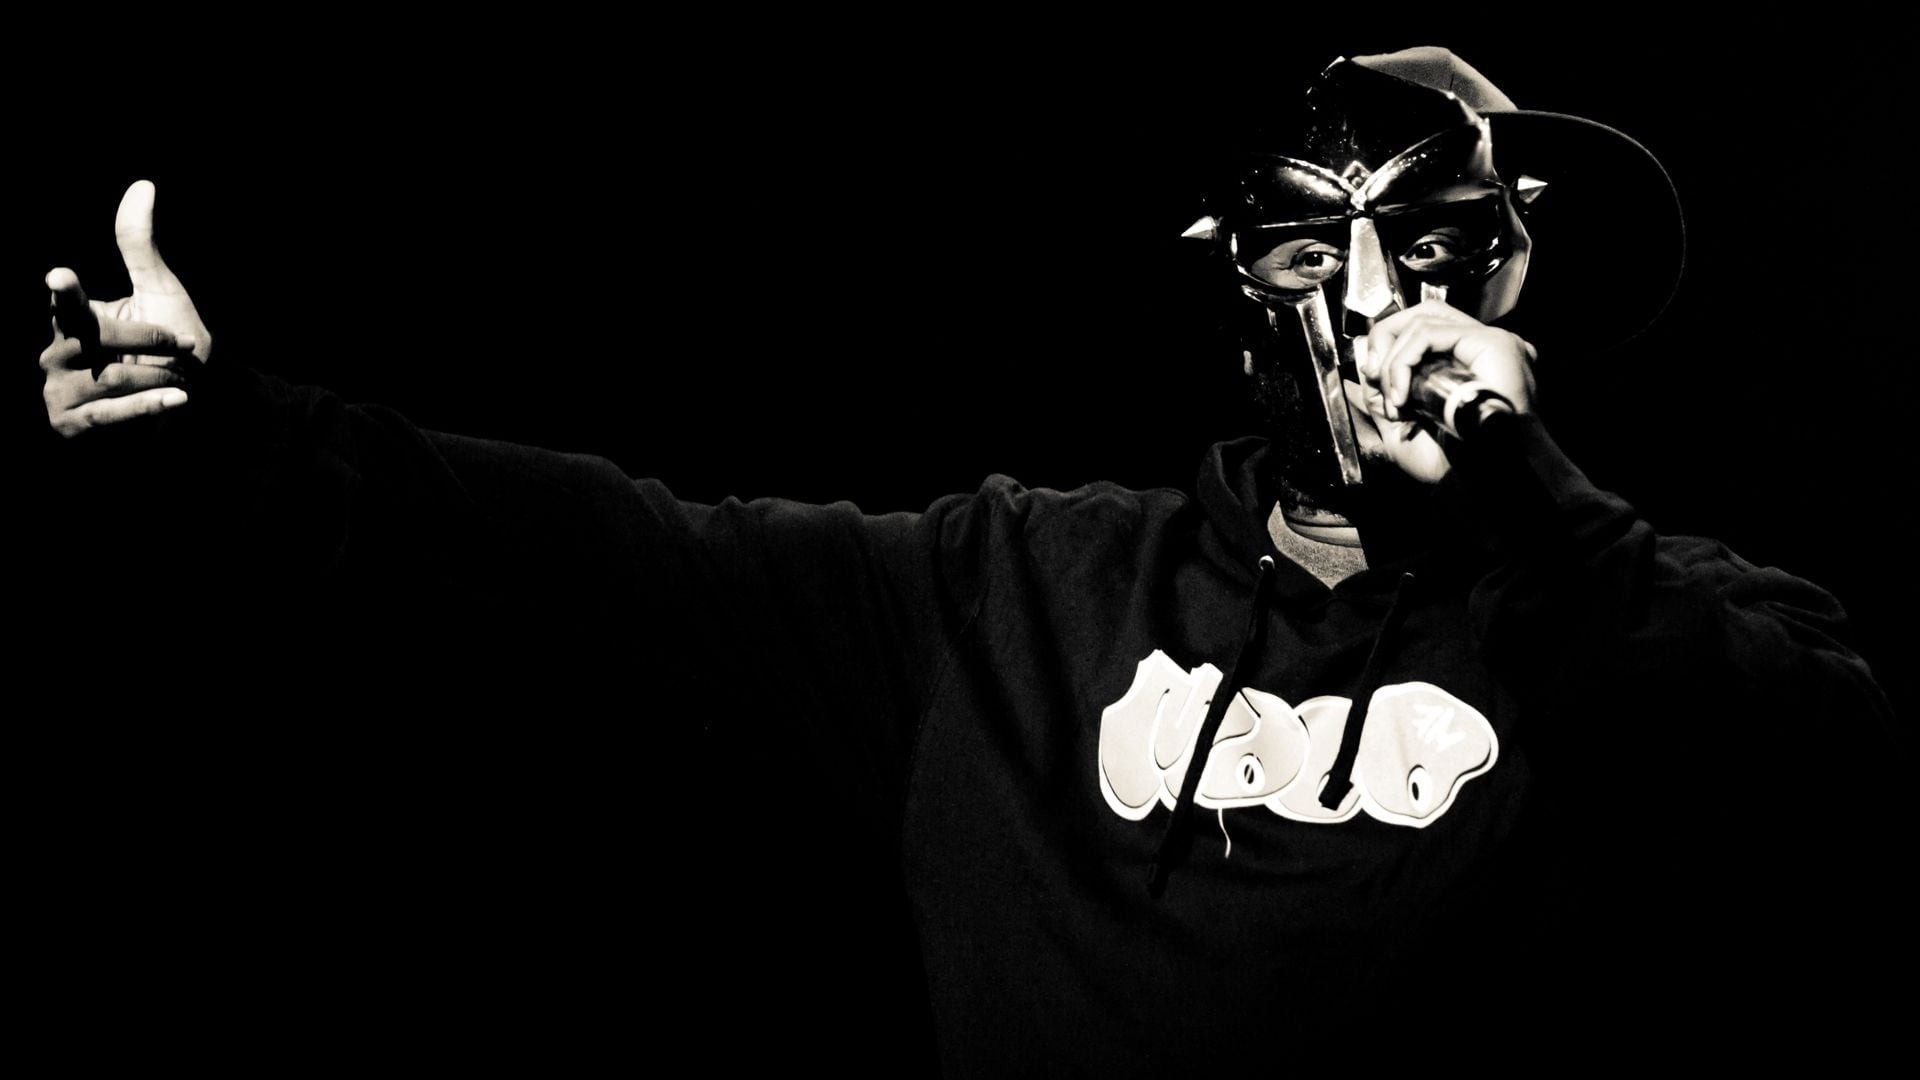 mf doom wallpaper 183�� download free amazing wallpapers for